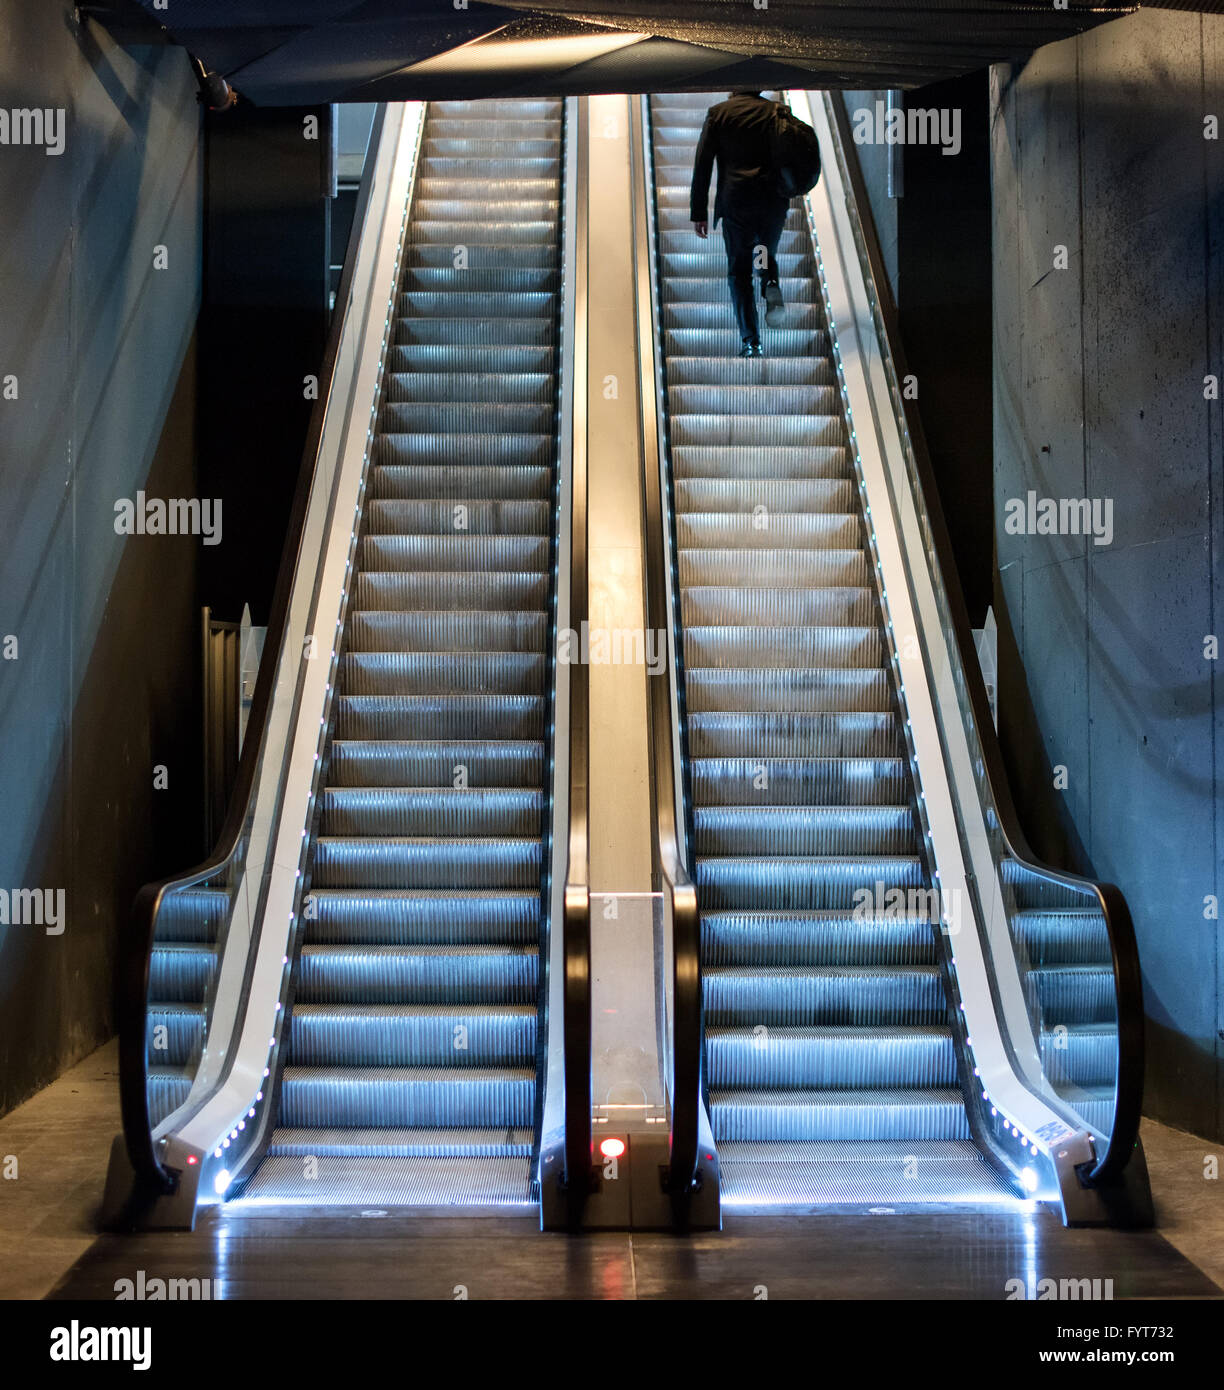 Man ascending an escalator from a subway riding up the moving treads towards daylight at the top, view from the - Stock Image